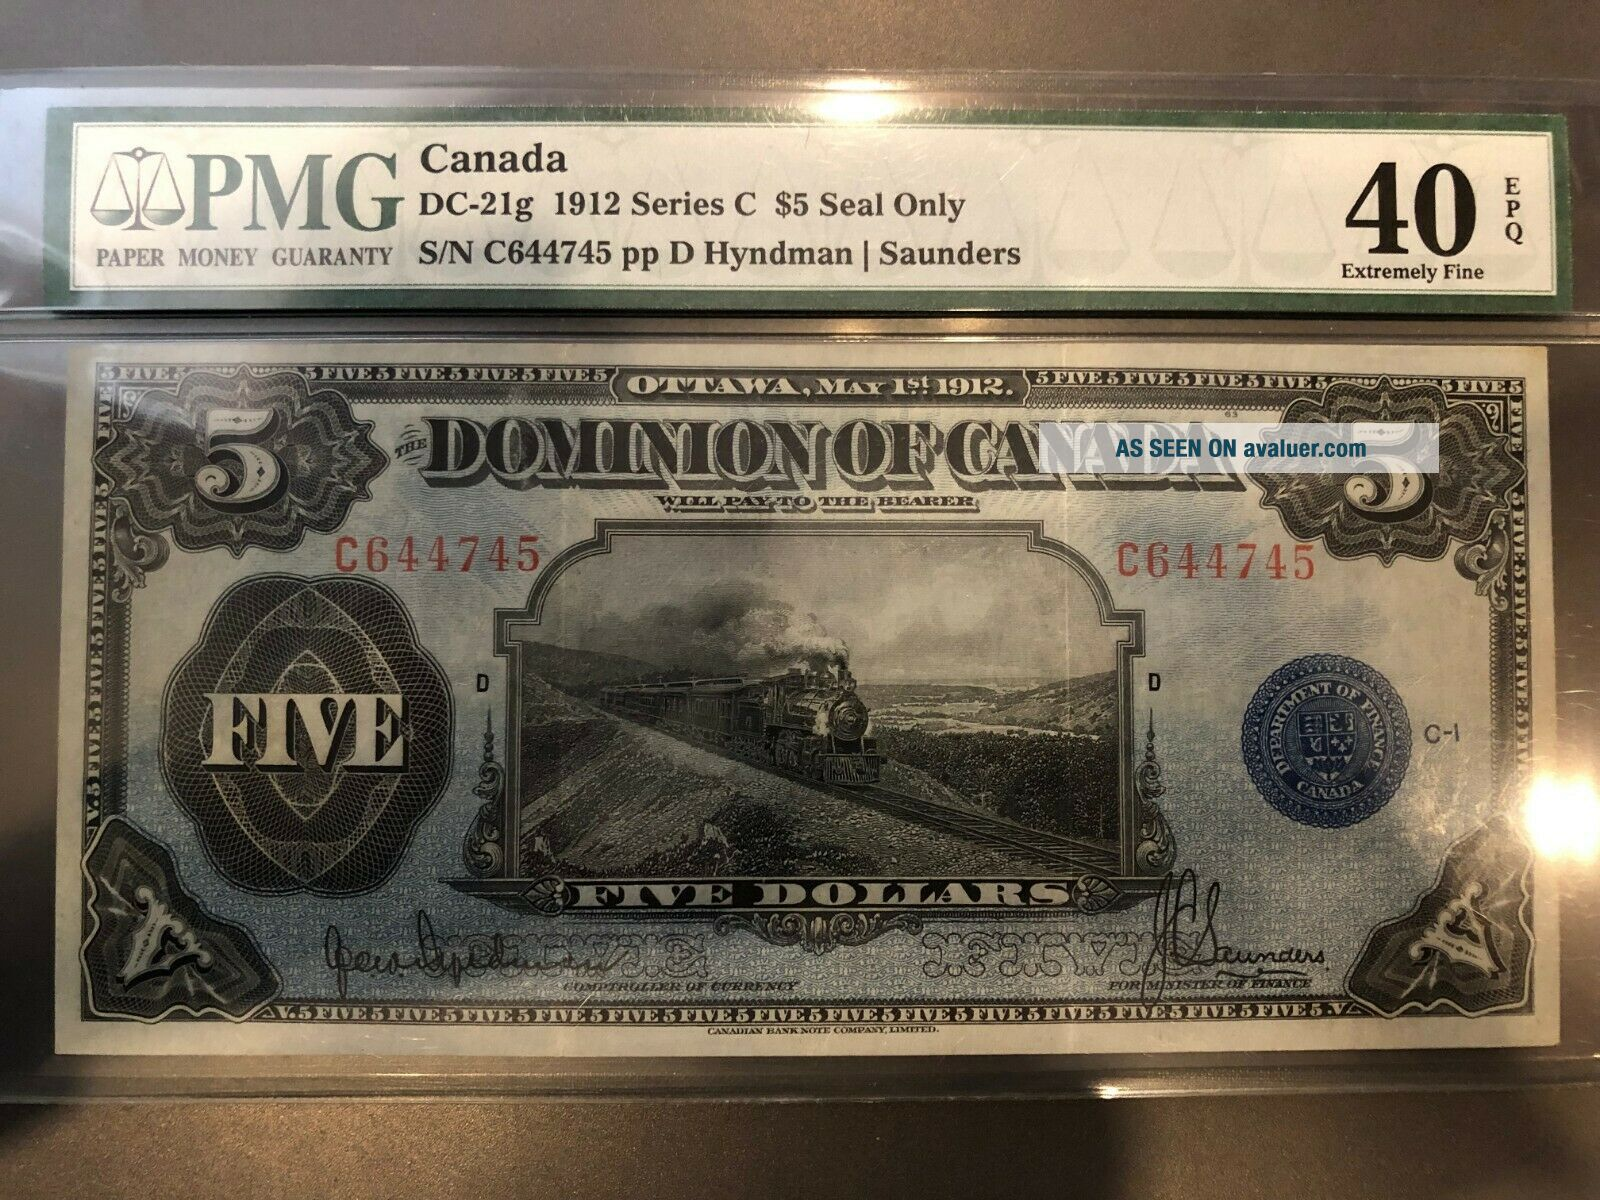 Dominion of Canada 1912 $5 Train Note,  PMG EF 40 EPQ,  DC - 21g Seal only